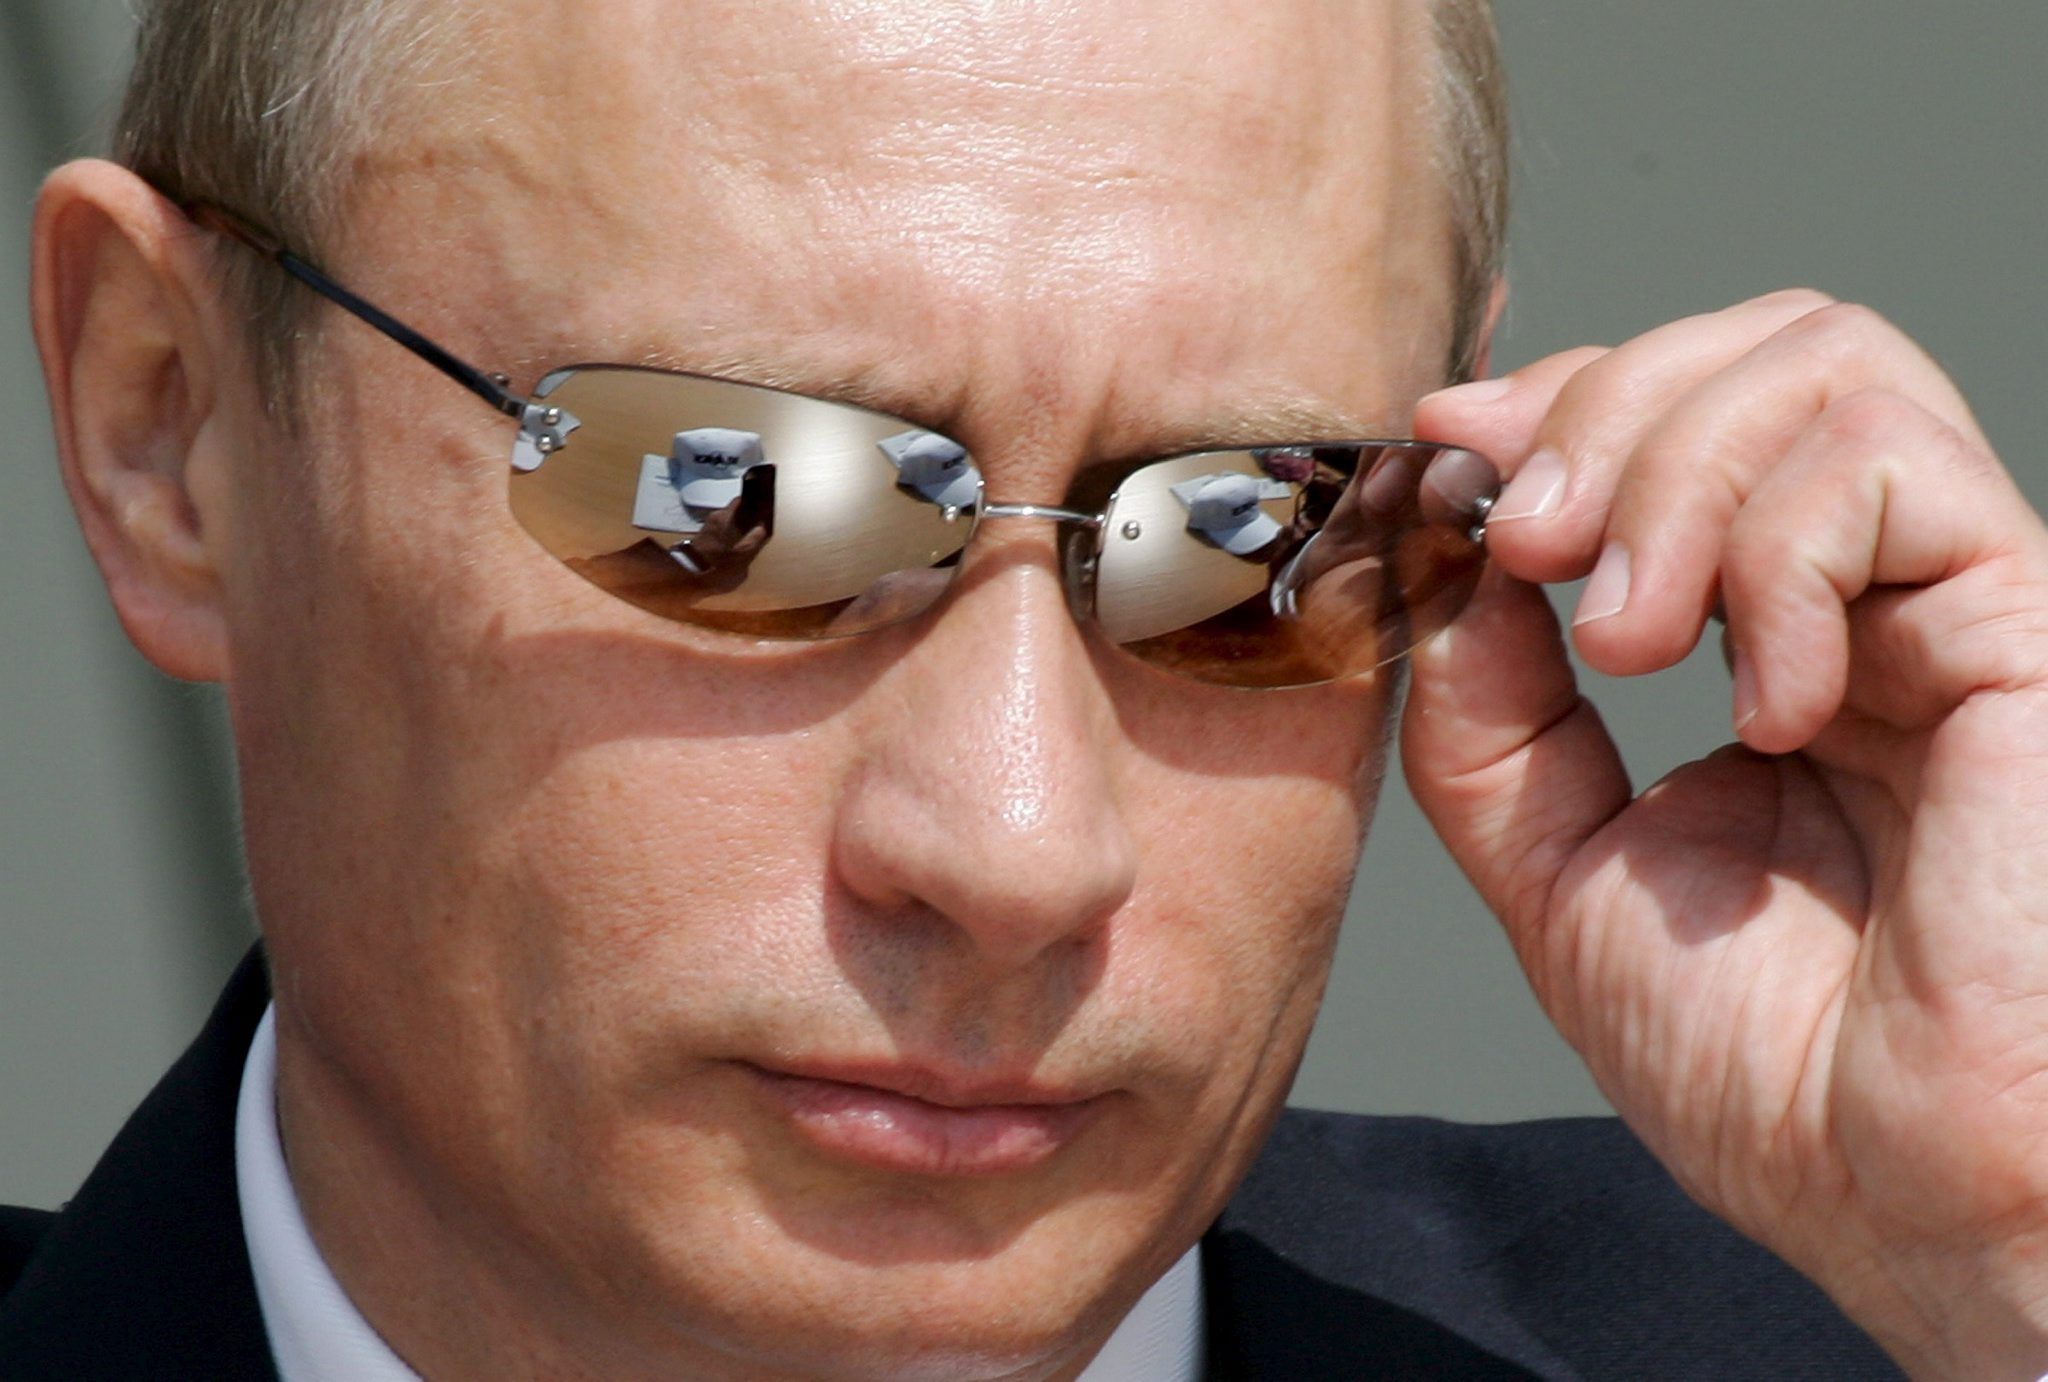 42 Pictures That Prove Just How Much Badass Vladimir Putin Really Is